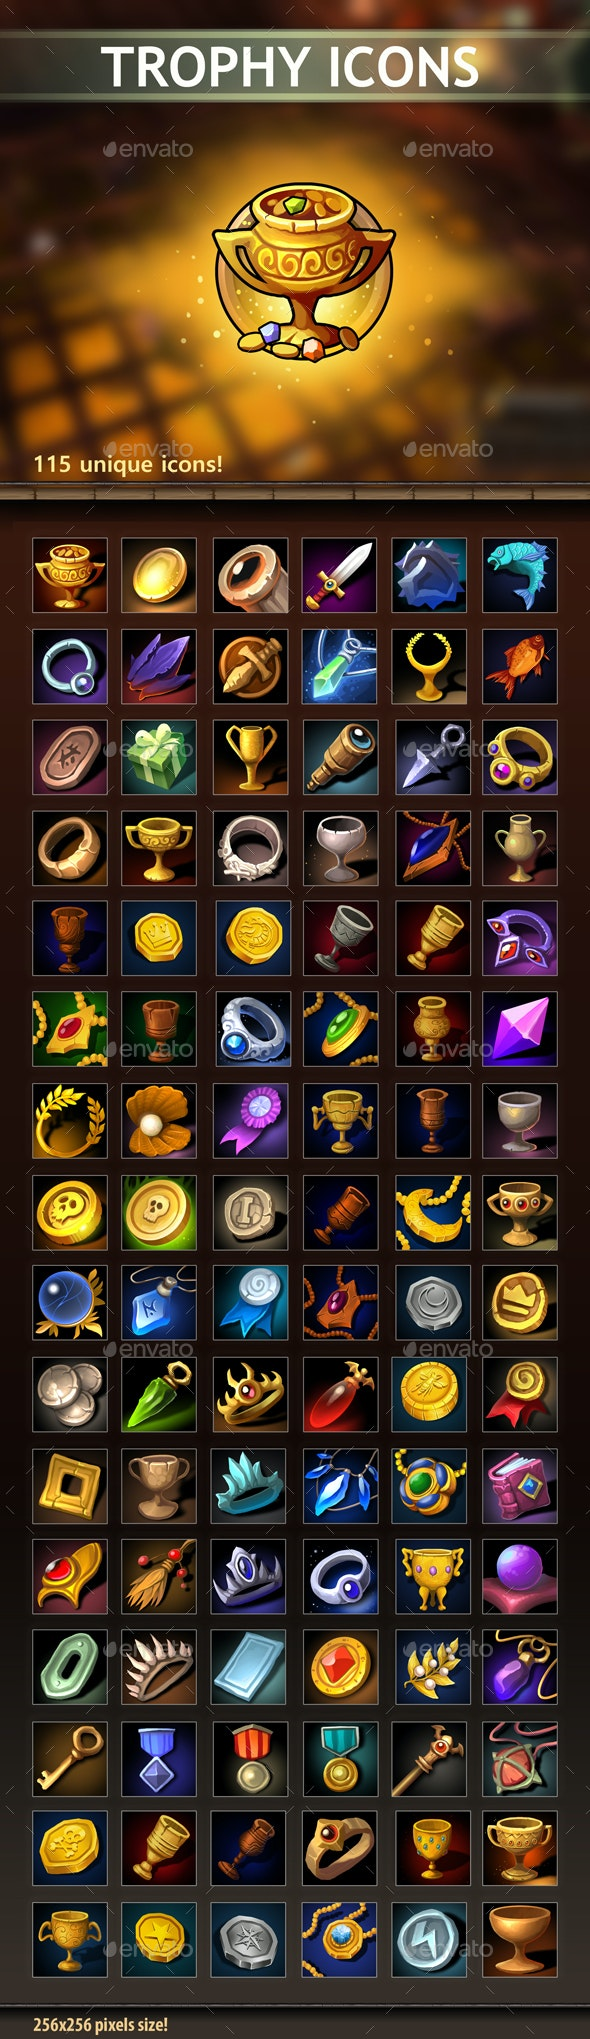 Trophy Icons - Miscellaneous Game Assets